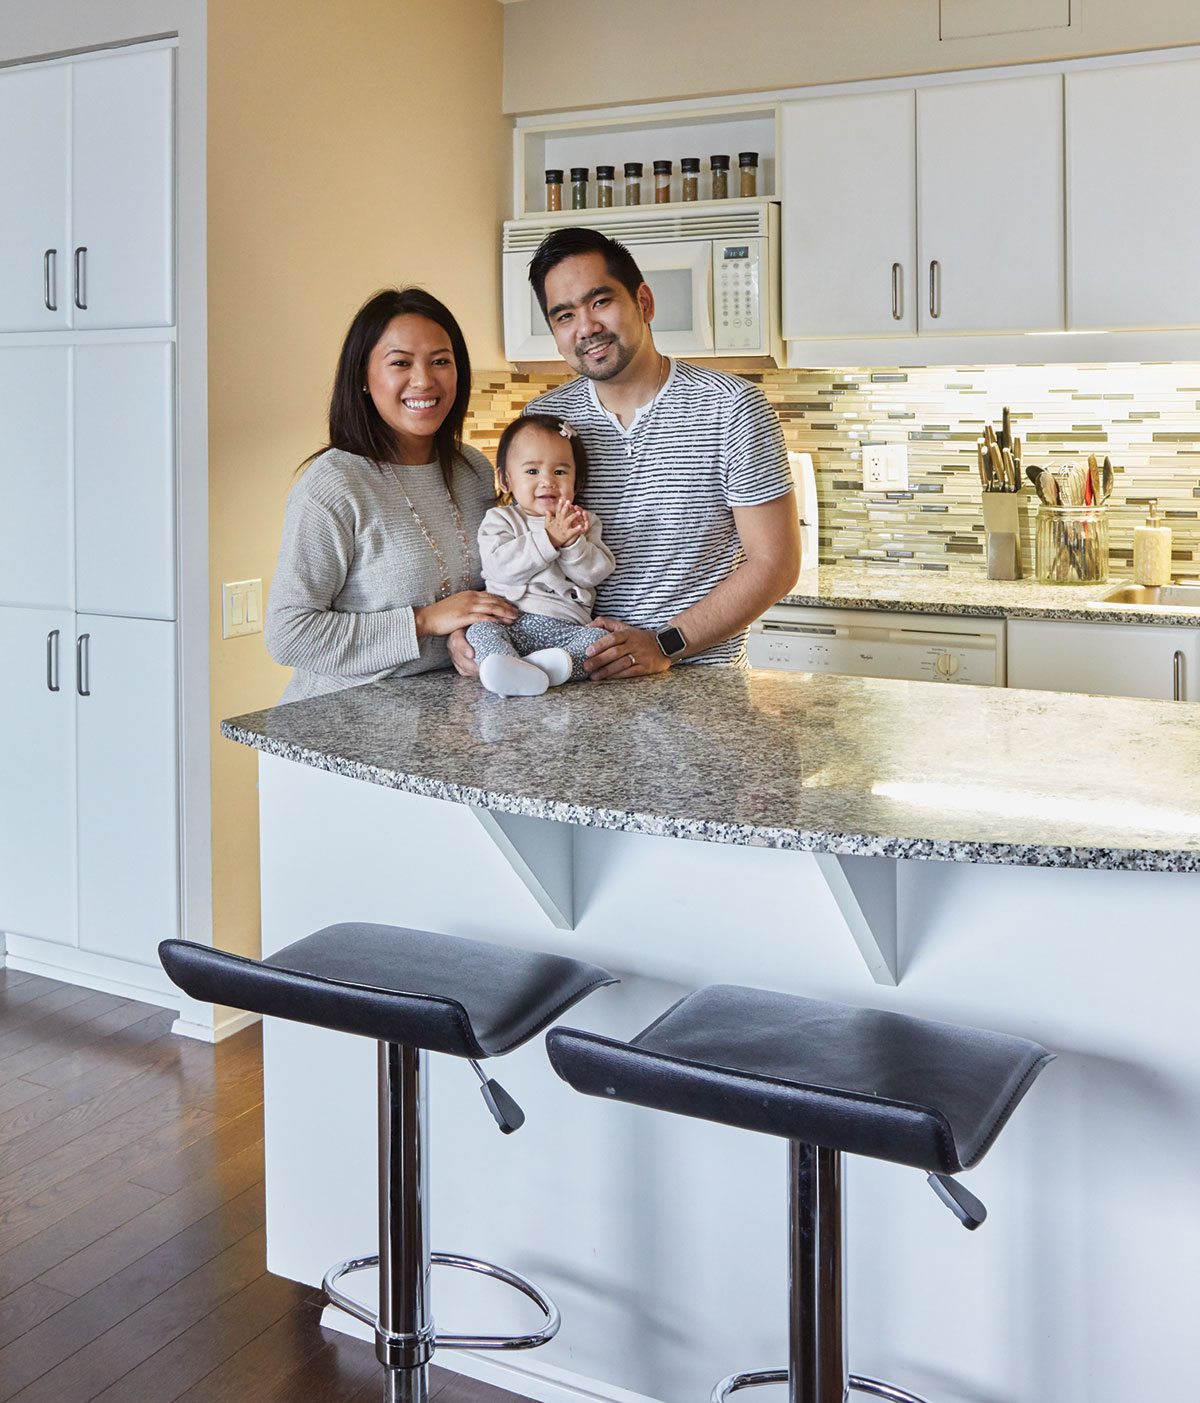 Elaine and James Evangelista and their 10-month-old daughter, Kara Elise, at Radiance Condos